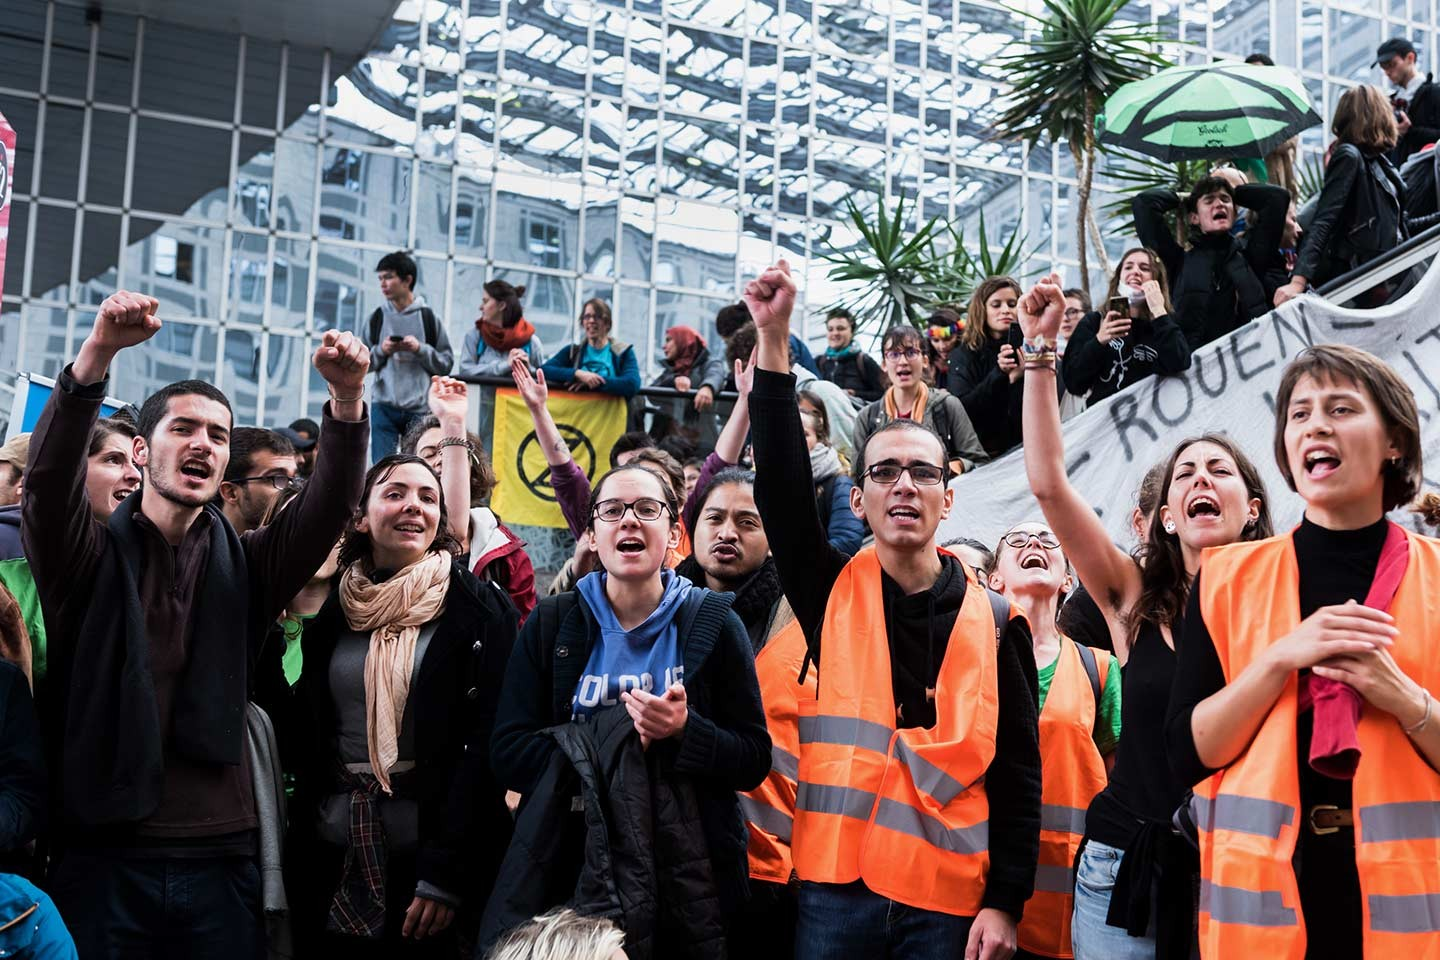 Extinction Rebellion à la poursuite d'octobre vert